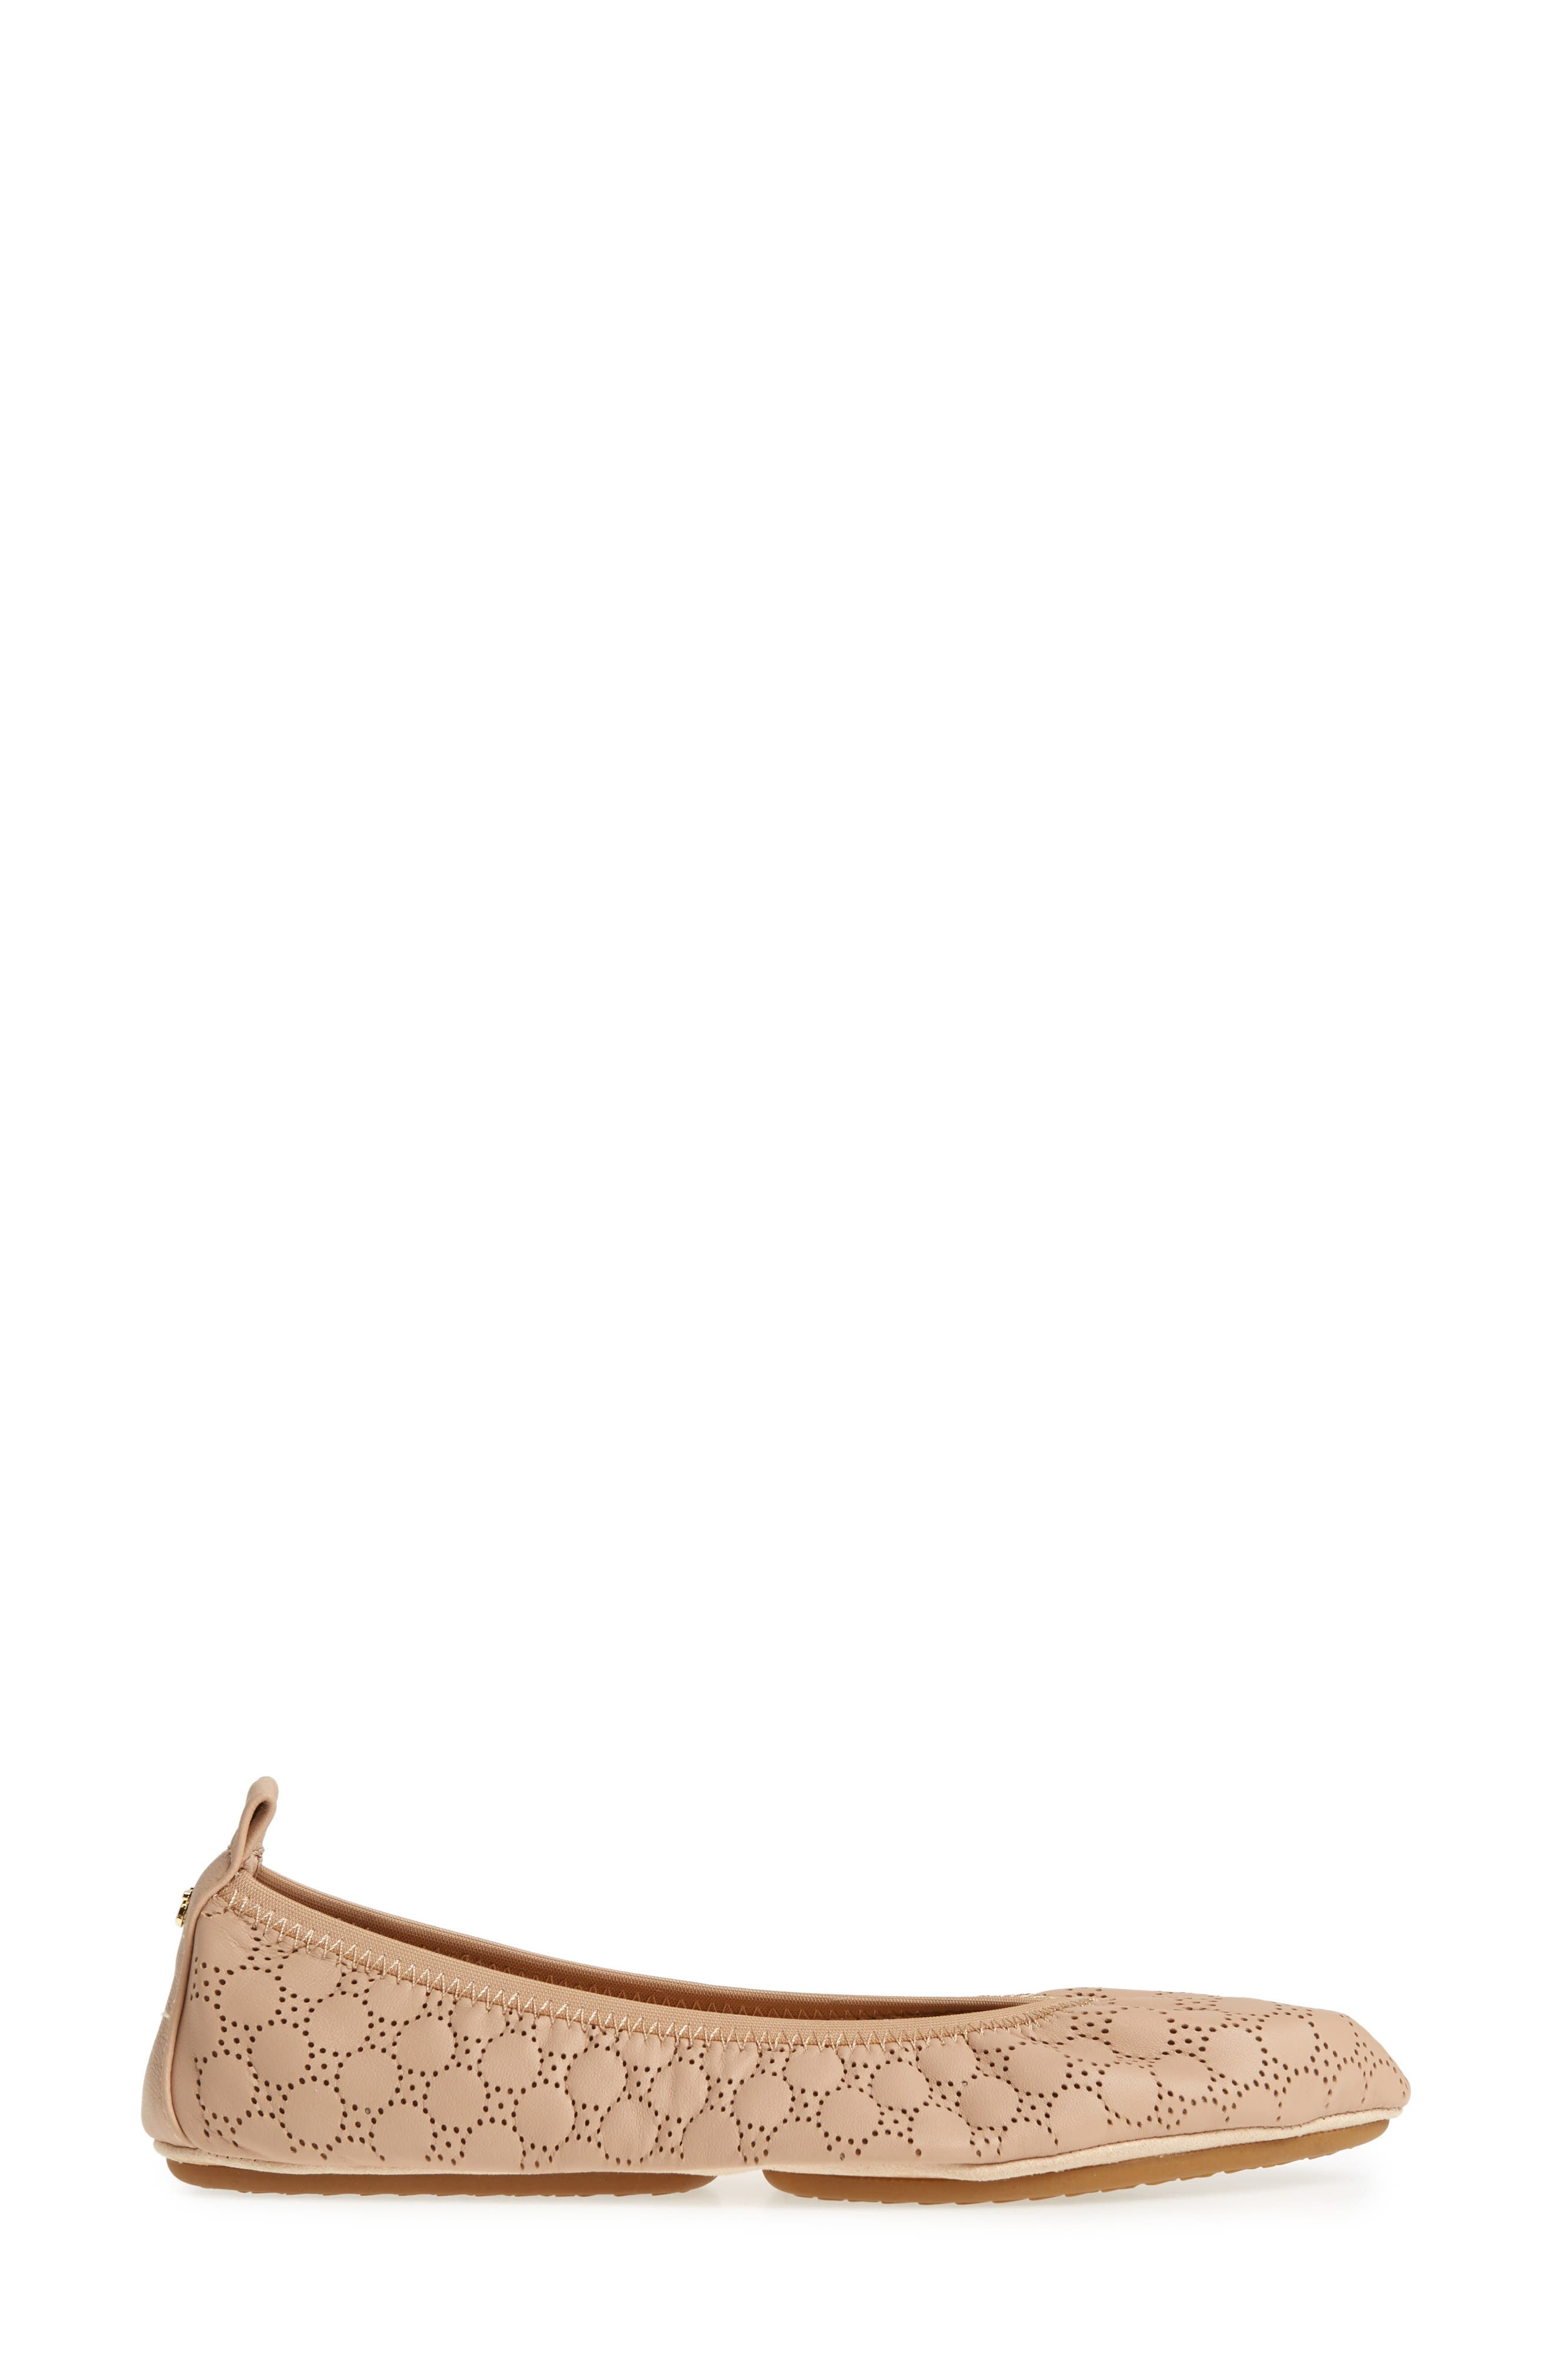 Vince Foldable Ballet Flat,                             Alternate thumbnail 3, color,                             Nude Circle Perforated Leather